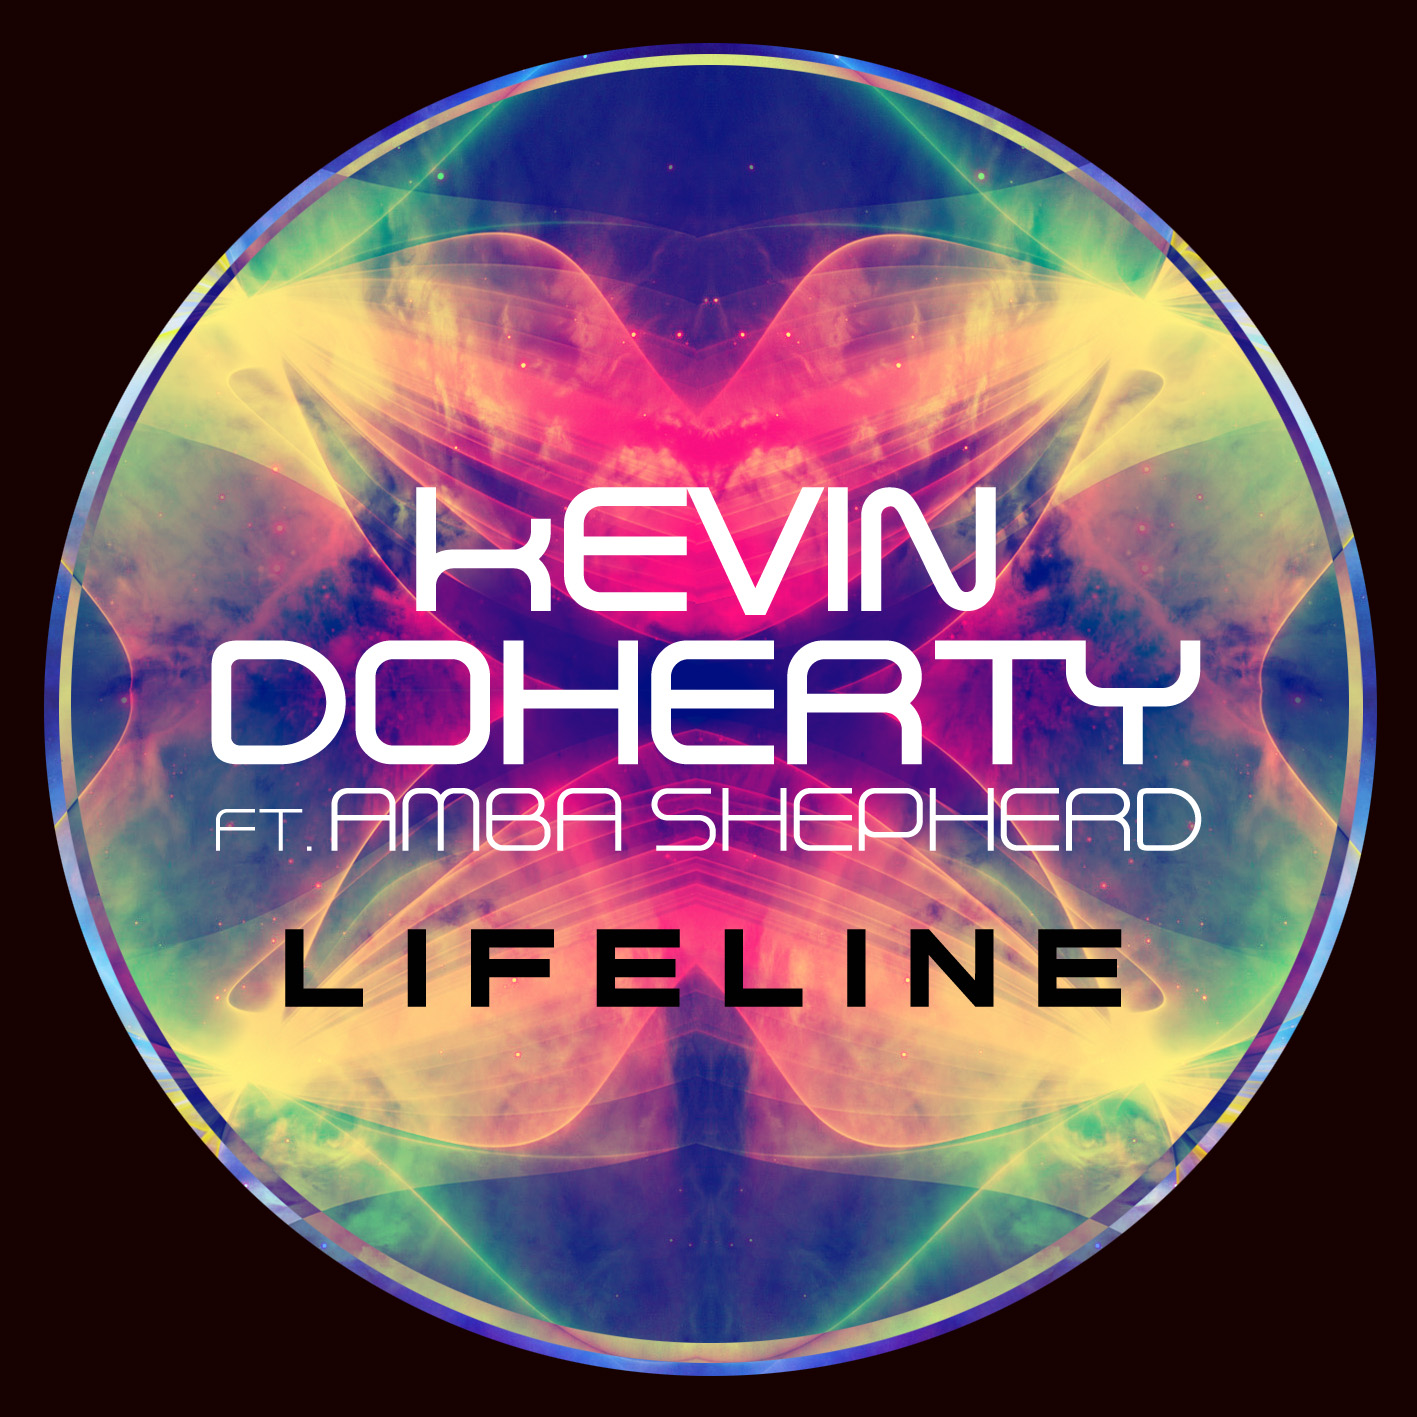 Kevin Doherty feat. Amba Shepherd – Lifeline (Pauls Paris Mix)